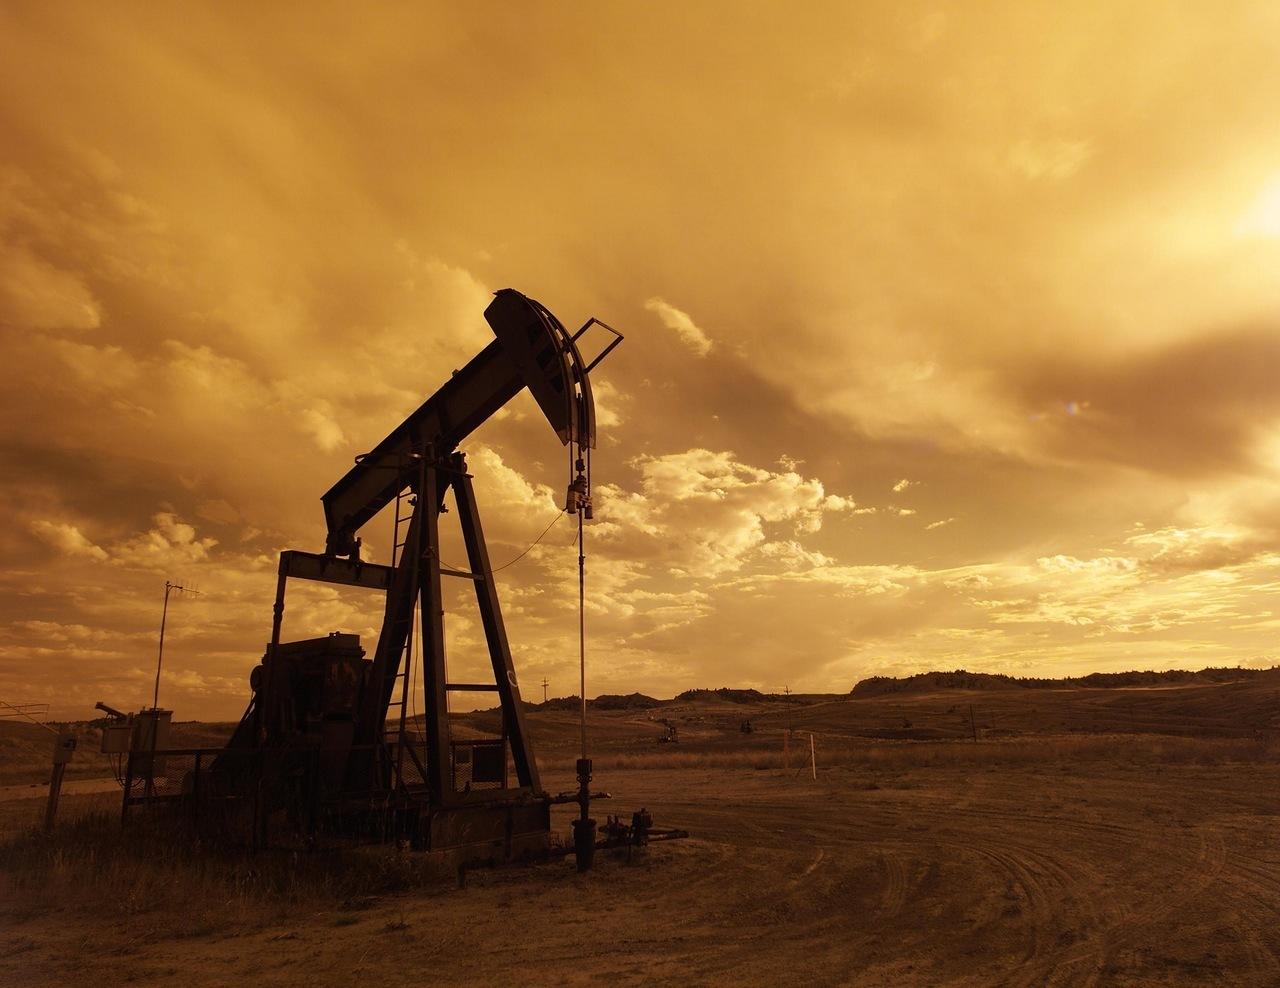 oil-pump-jack-sunset-clouds-silhouette-impakter-trump-madman-threory-imperialism